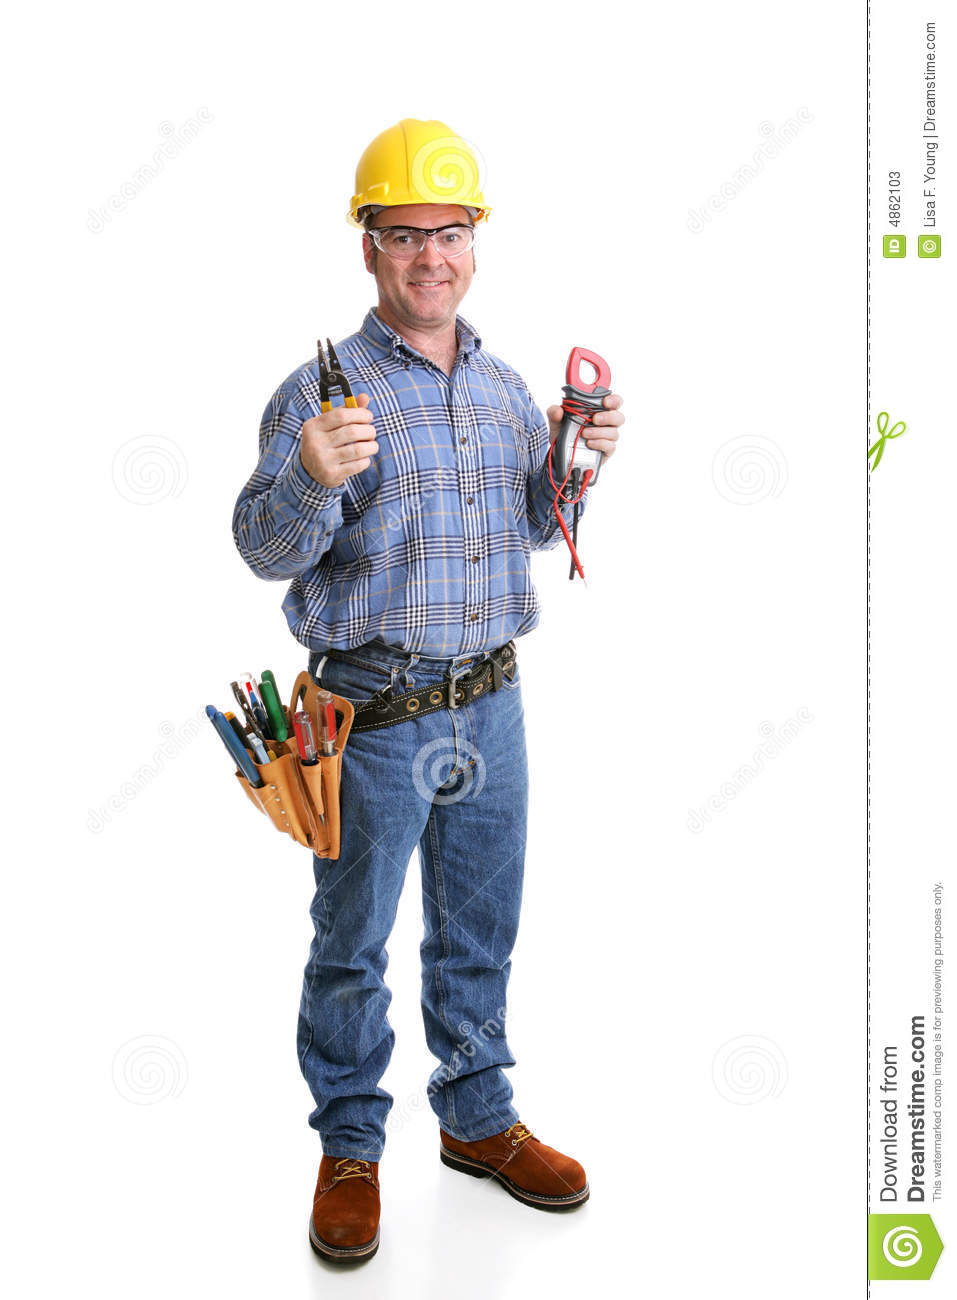 Friendly Electrician Full Body Stock Image  Image 4862103